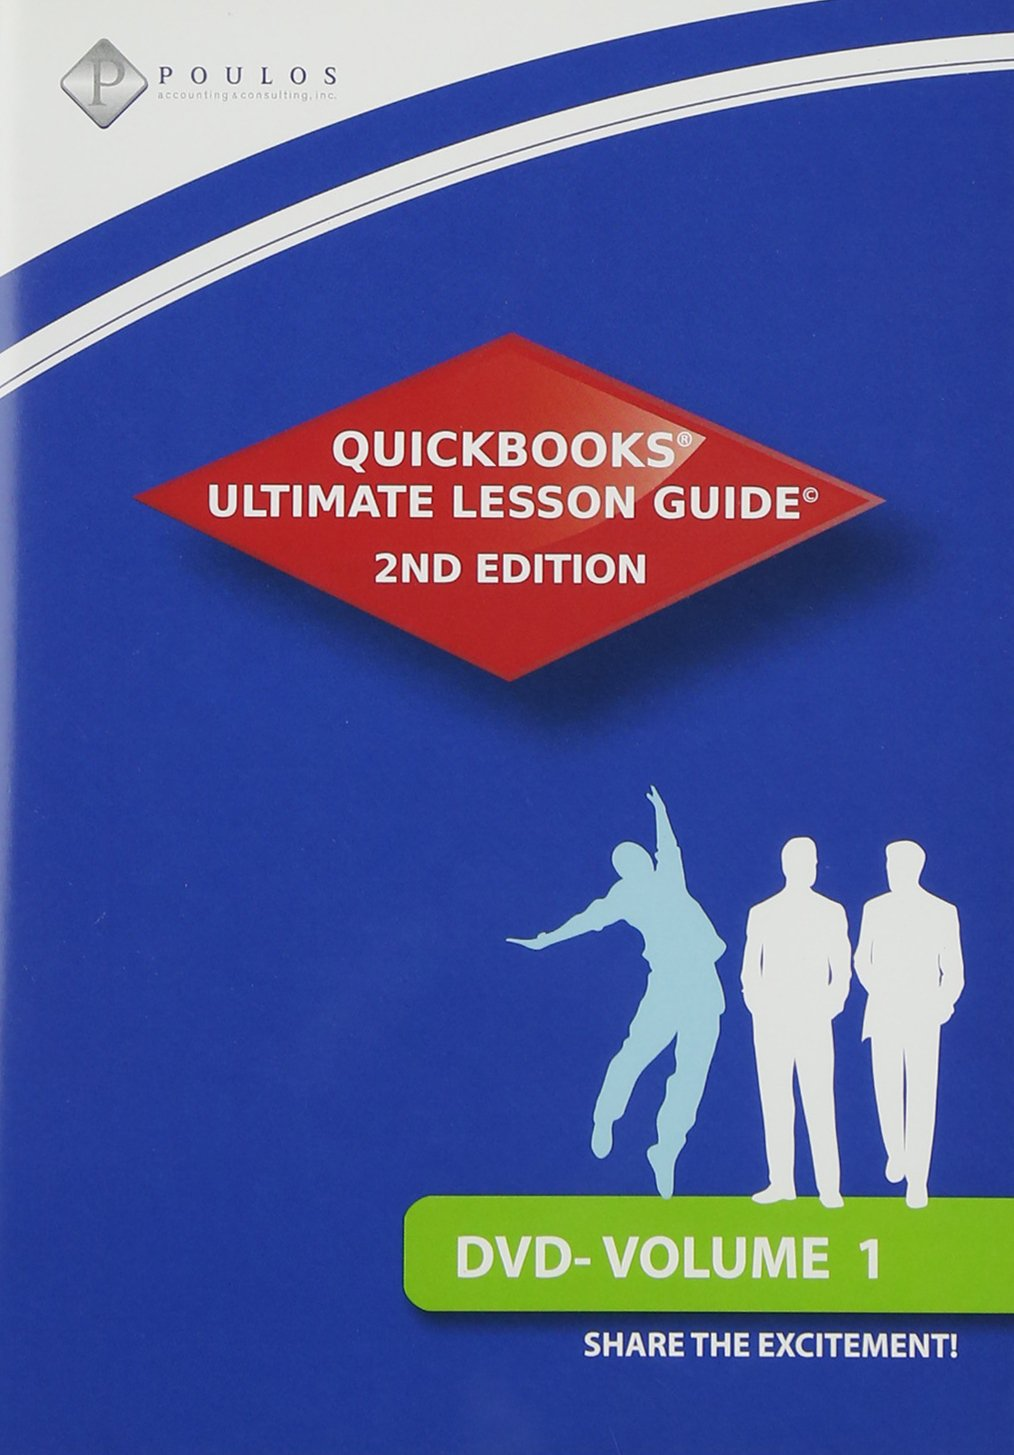 Quickbooks Ultimate Lesson Guide: 2nd Edition 1 by Ent. Software